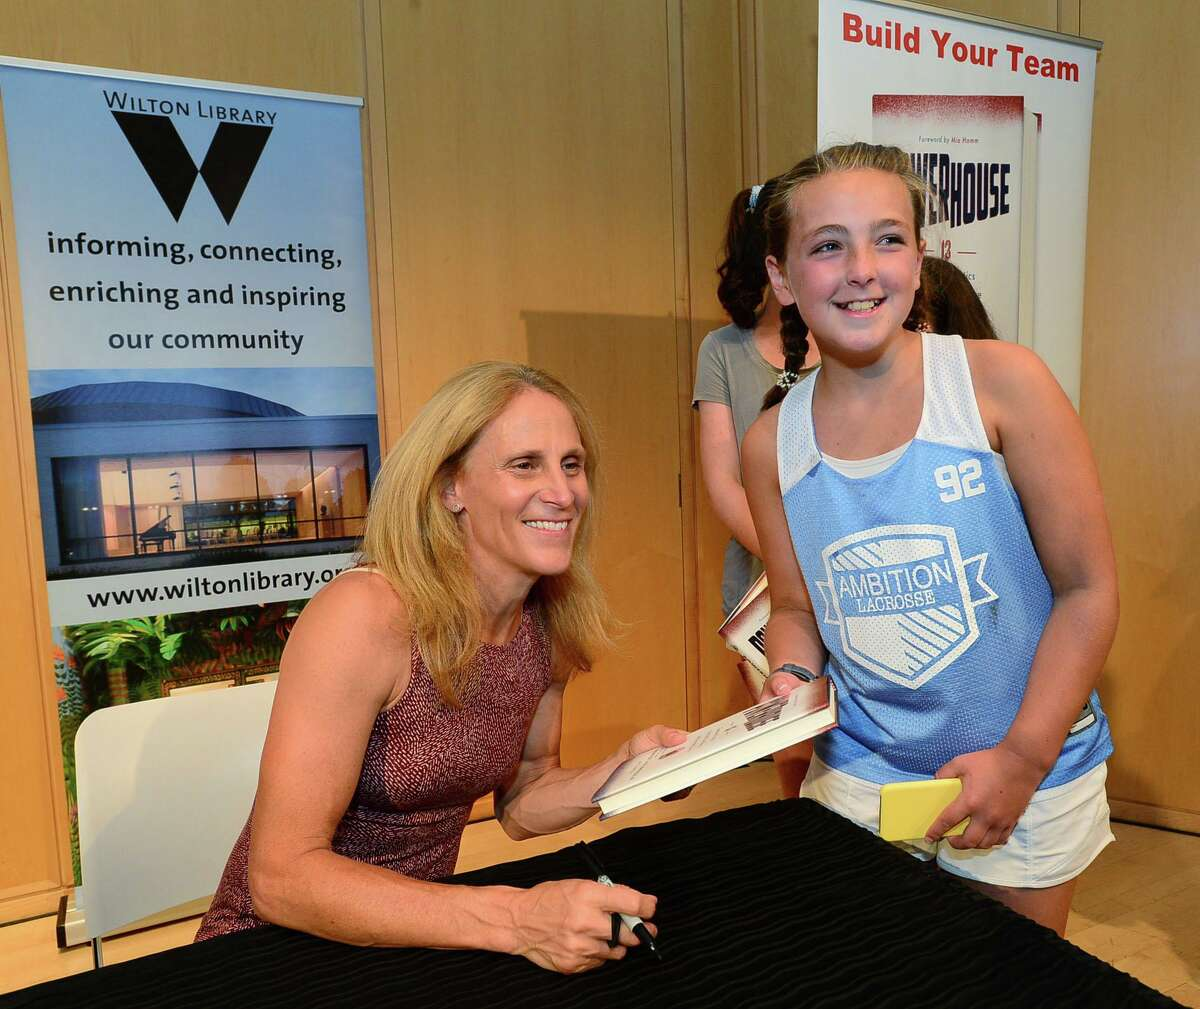 Wilton resident Annalise Lamanna, 12, gets a book signed by Wilton High School graduate and soccer star Kristine Lilly.